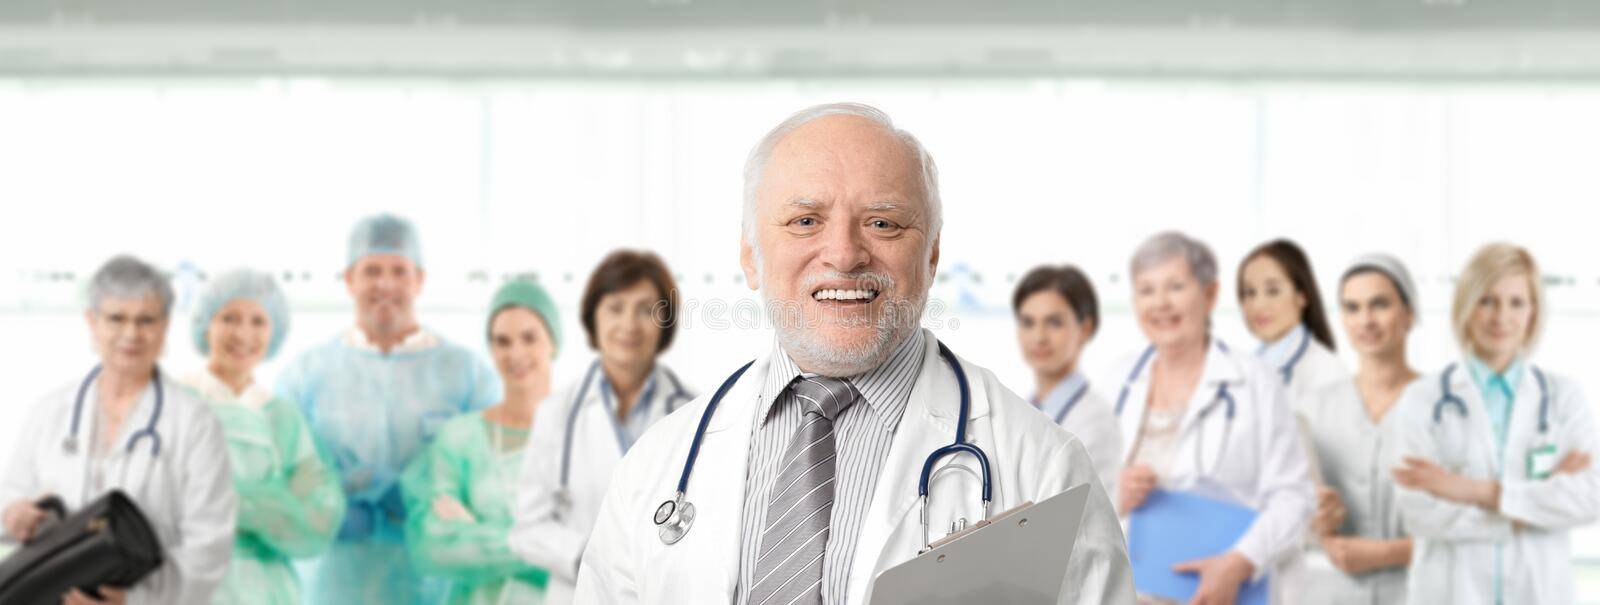 Team portrait of medical professionals. Team of medical professionals lead by senior white haired doctor looking at camera, smiling stock photo